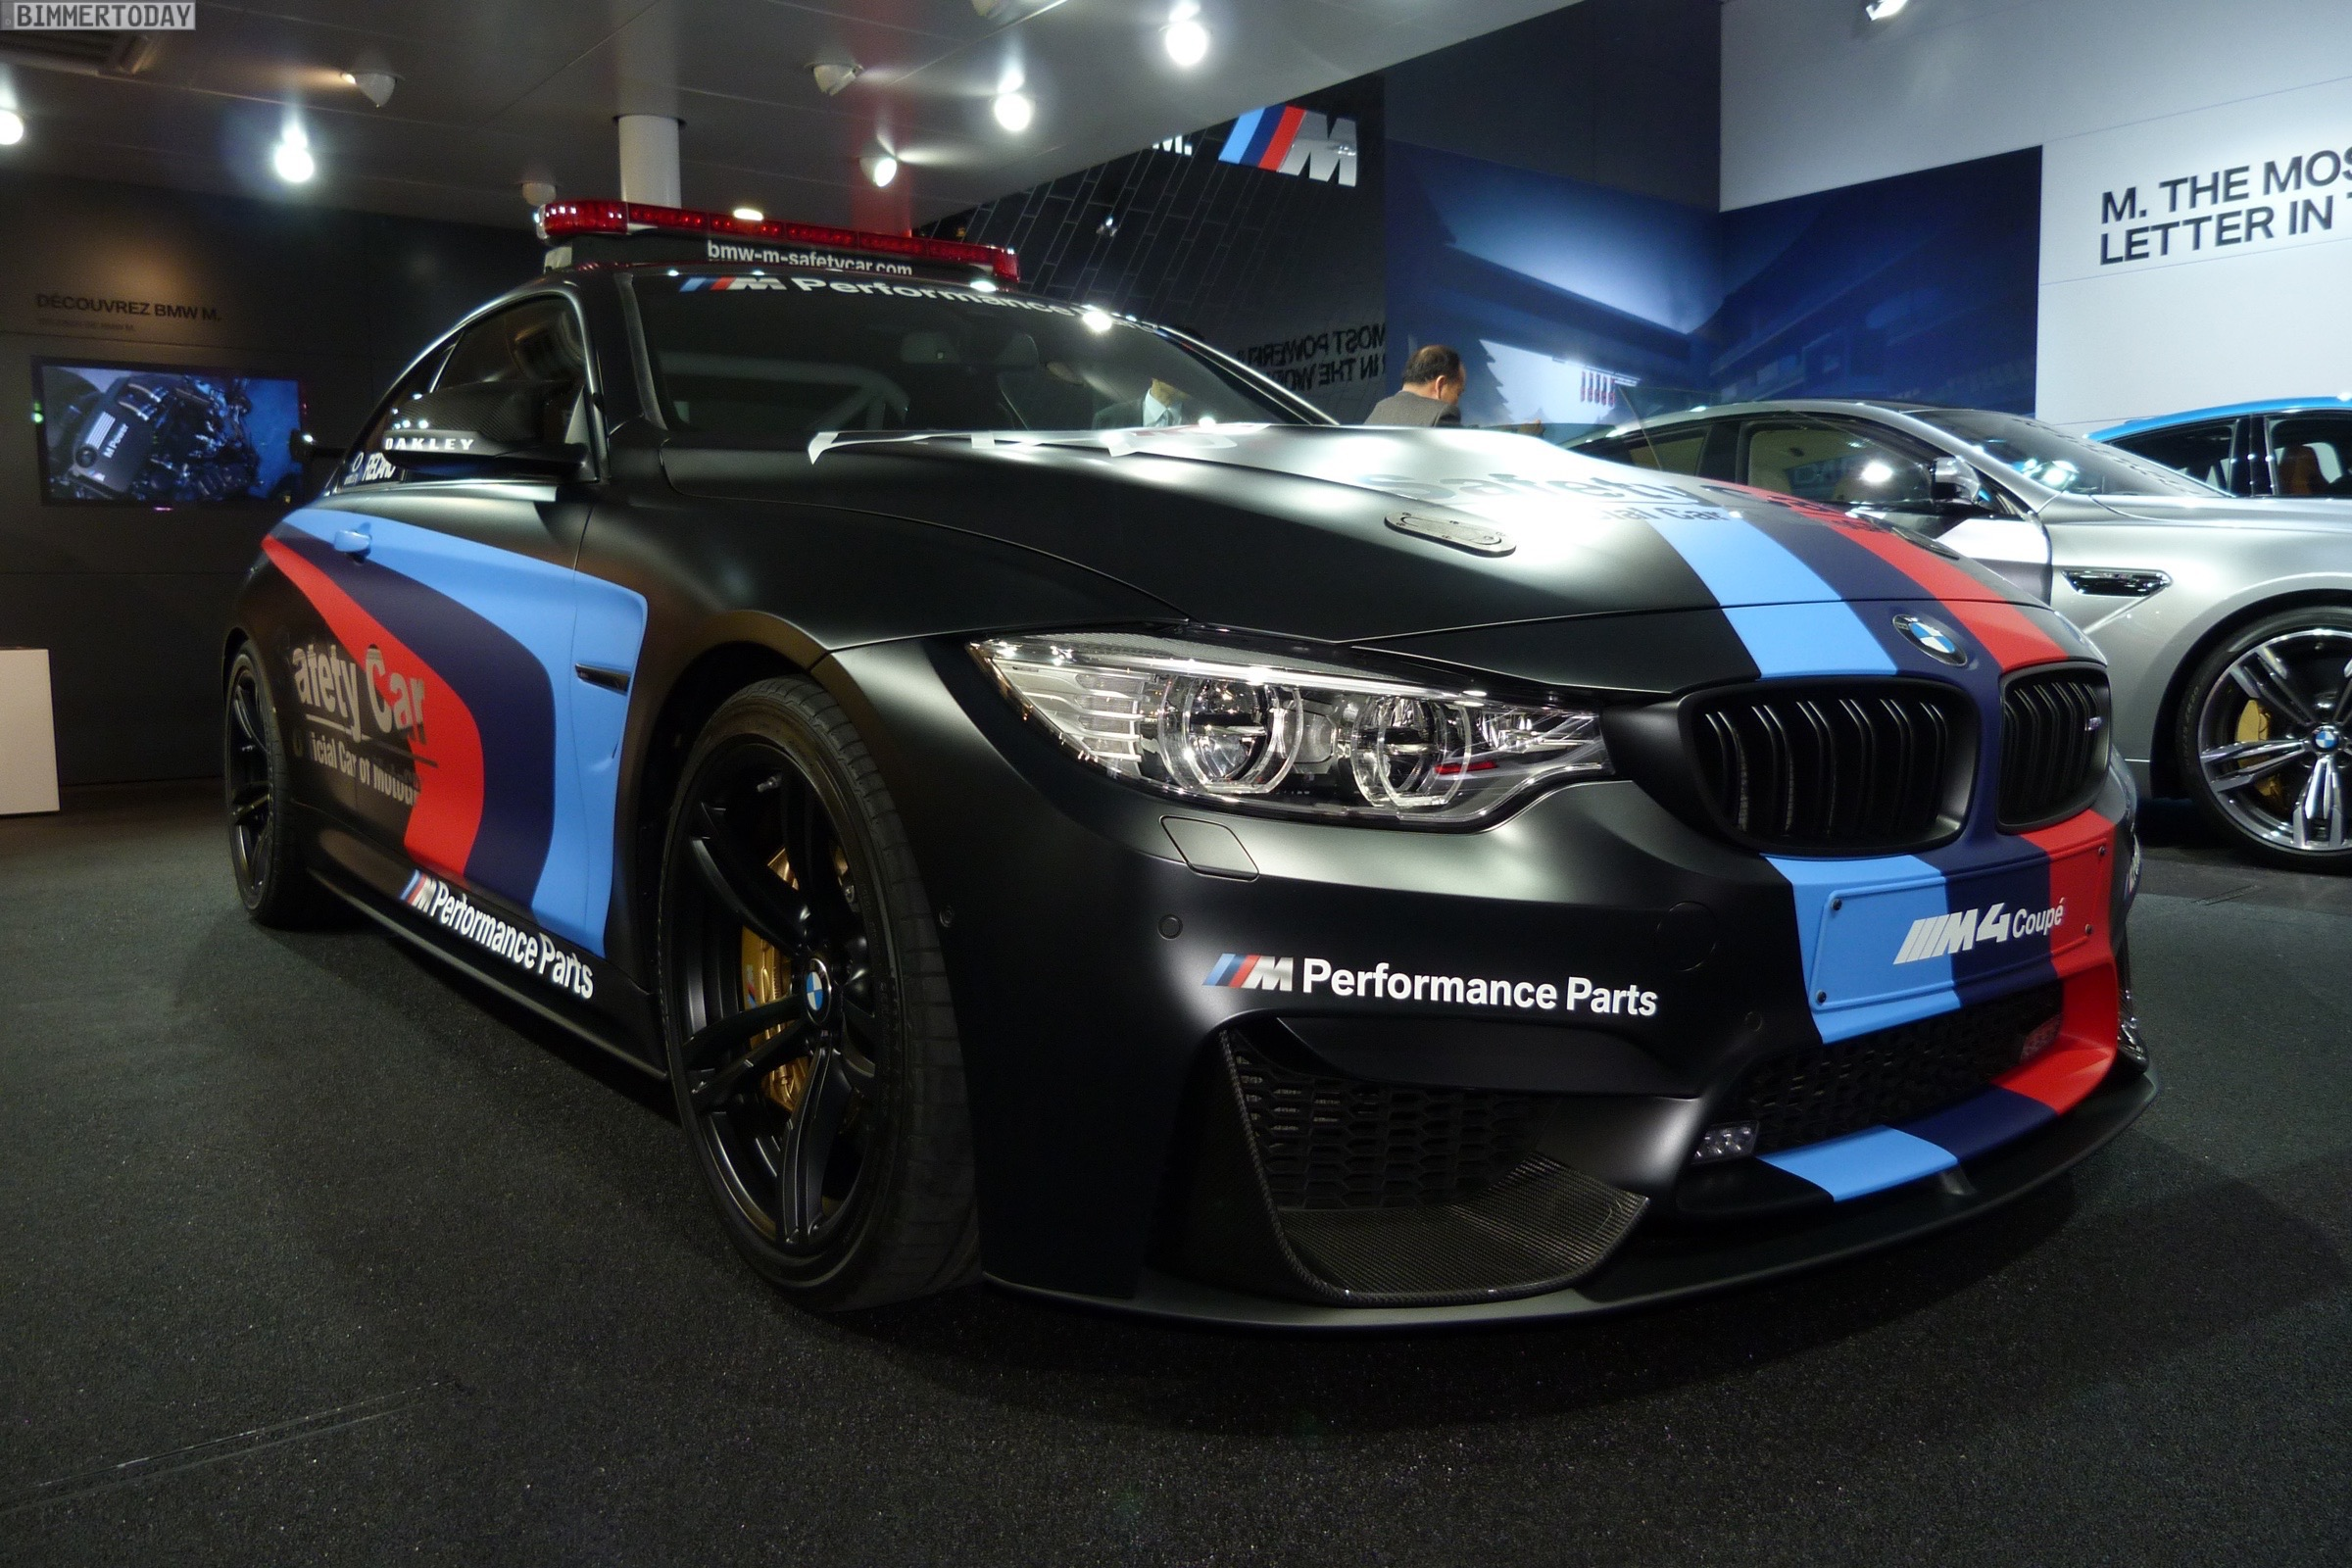 BMW M4 Coupe F82 Safety Car MotoGP Genf Autosalon 2015 LIVE 01